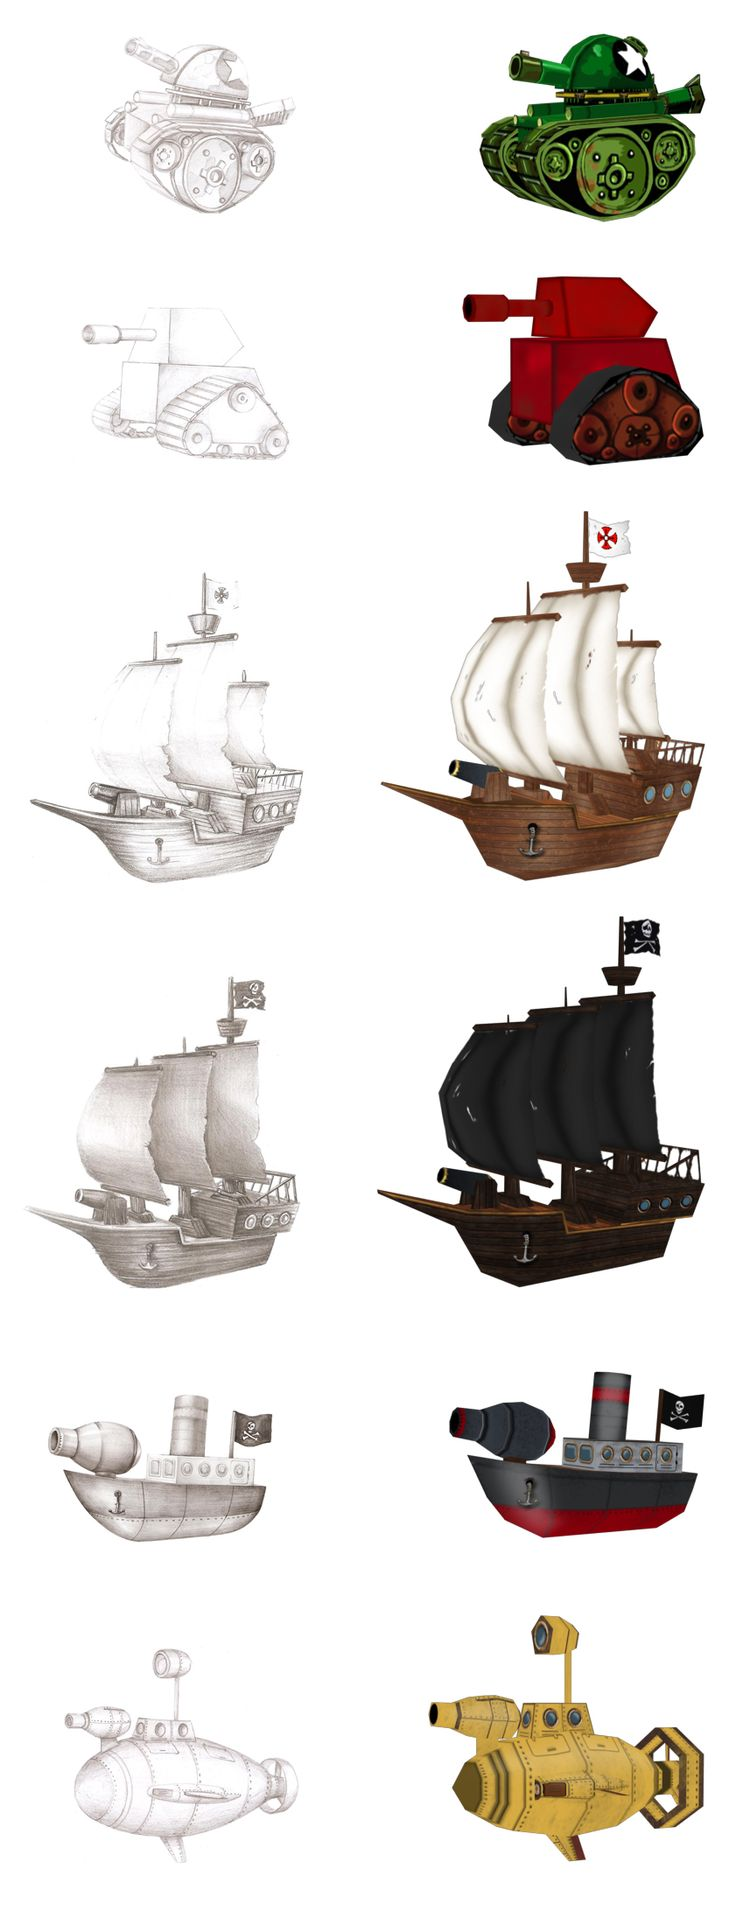 Creating a low-poly 3D models for online games. We decided to show you the process of creating sketches and the final 3D models of objects. You can see here models of tanks, ships, boat with a gun and a yellow submarine http://artforgame.com/